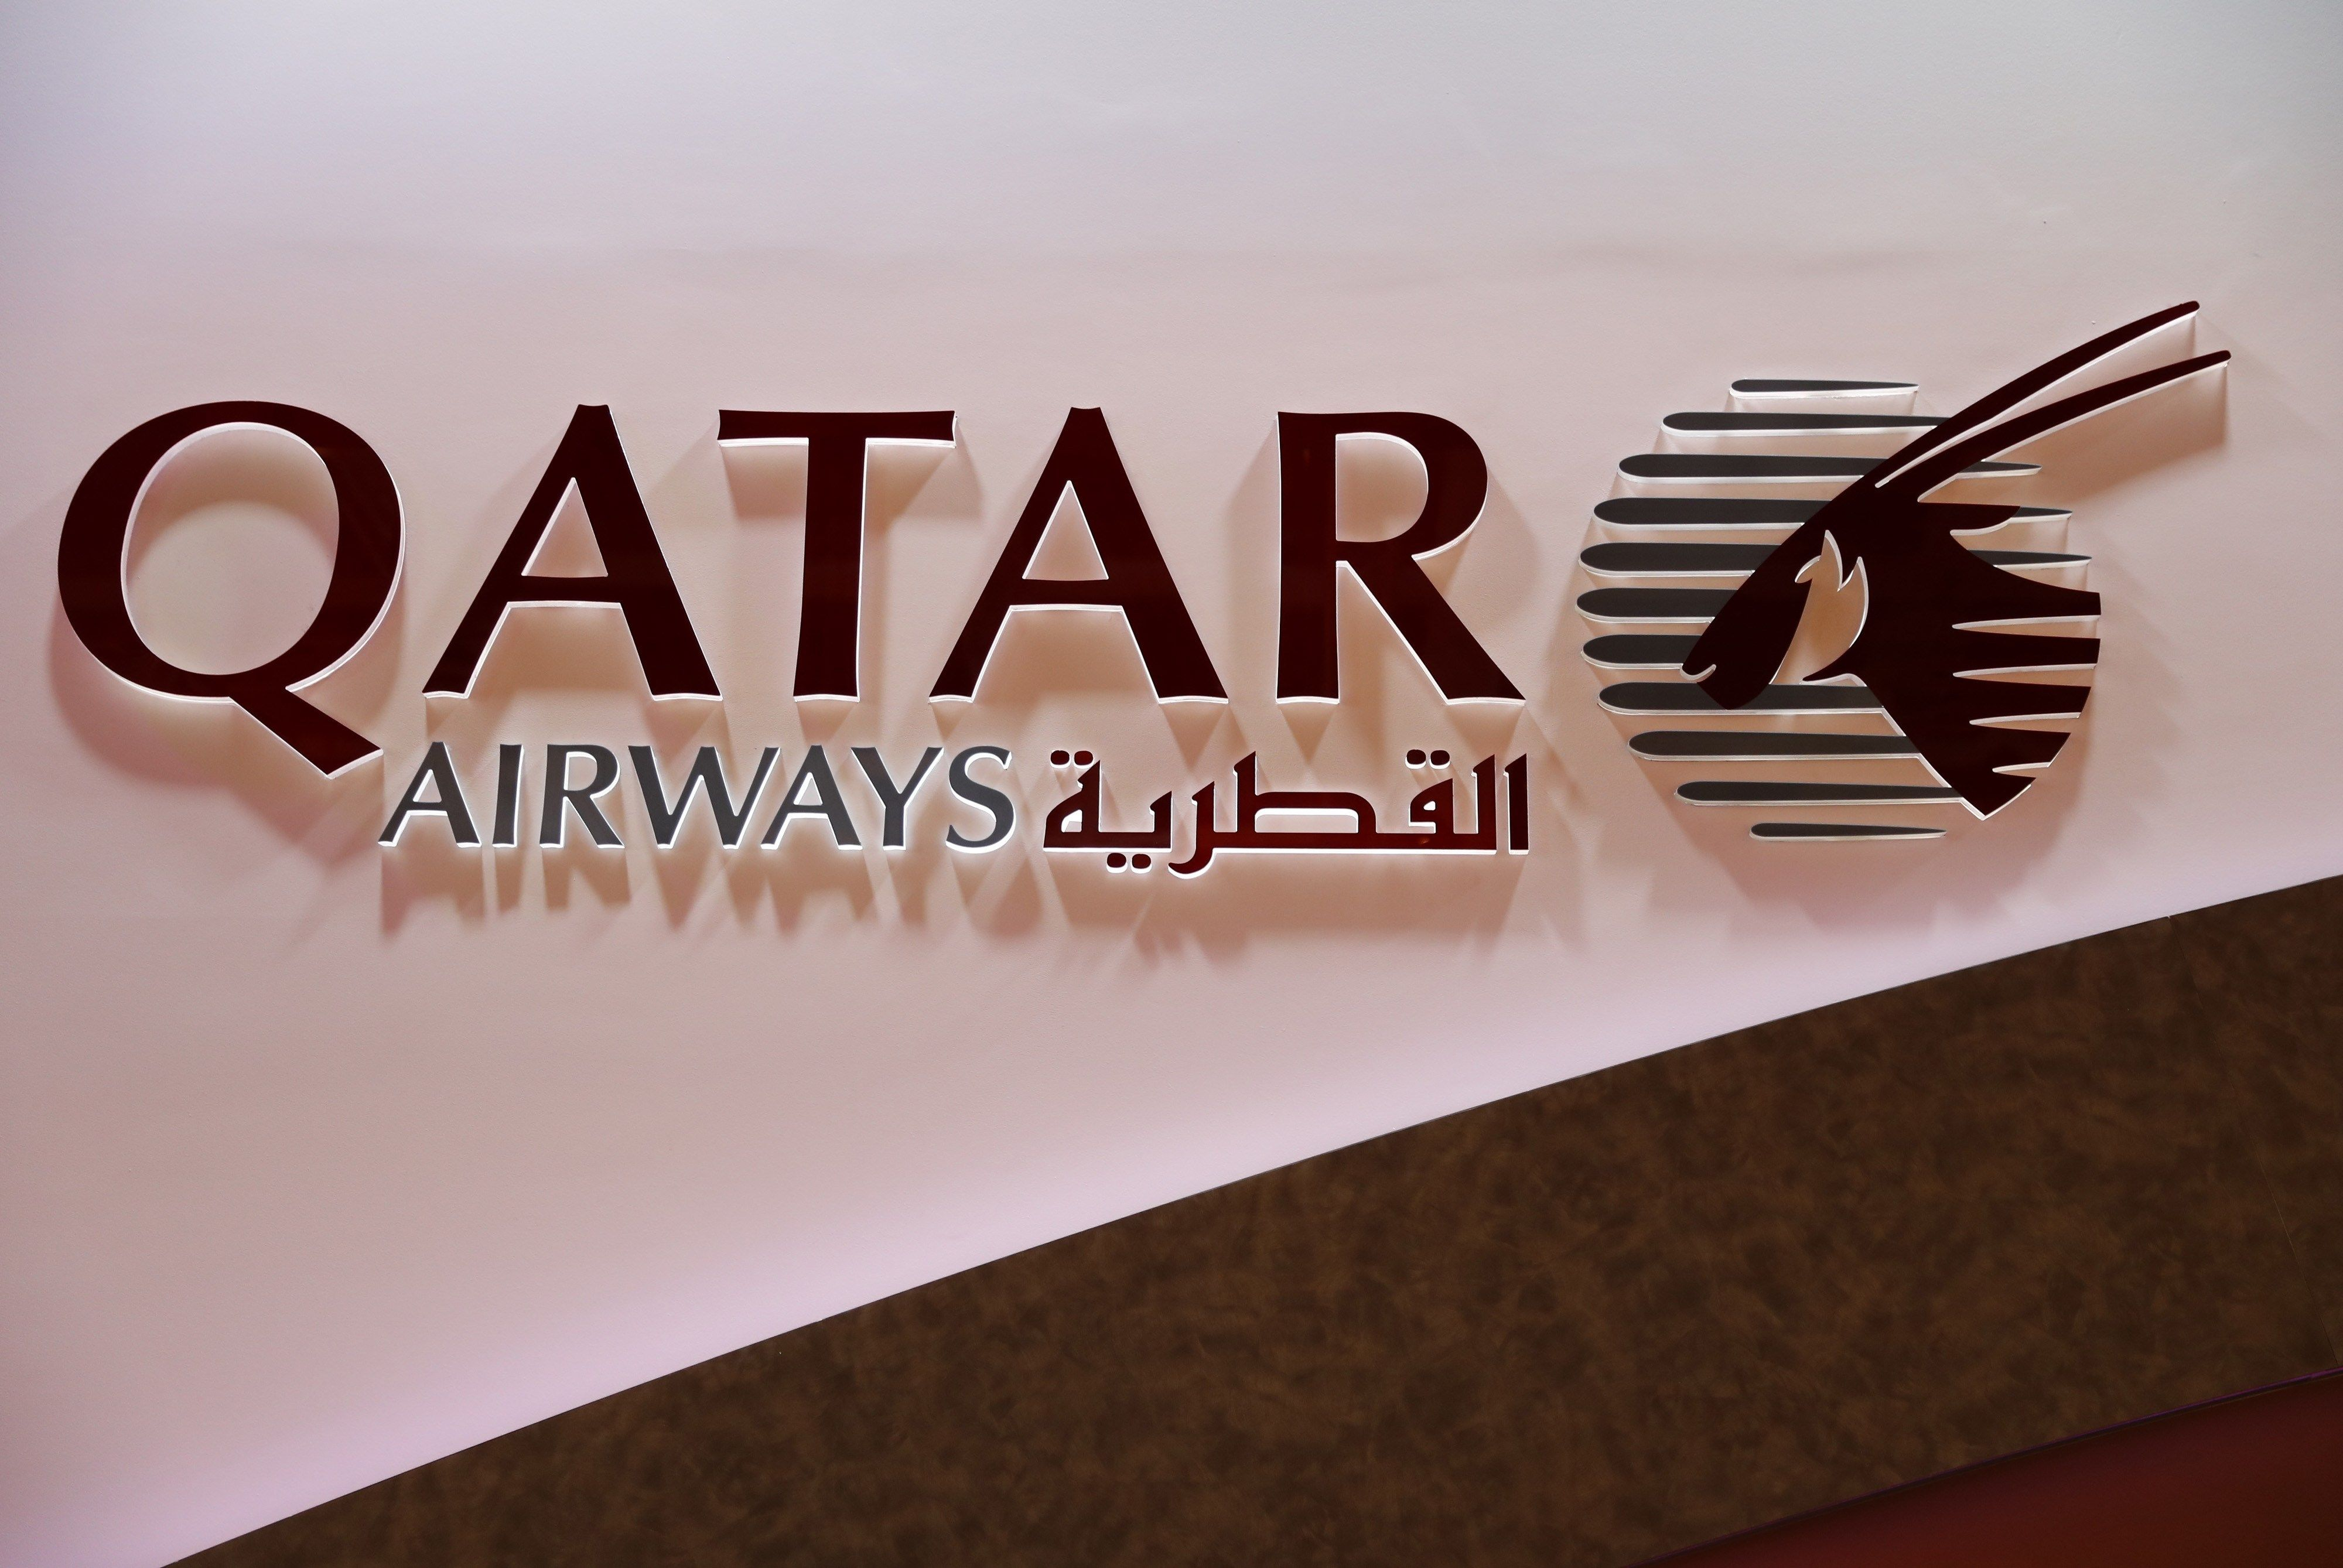 Qatar Airways Logo - Qatar Airways is reviewing plans for its own domestic Indian airline ...